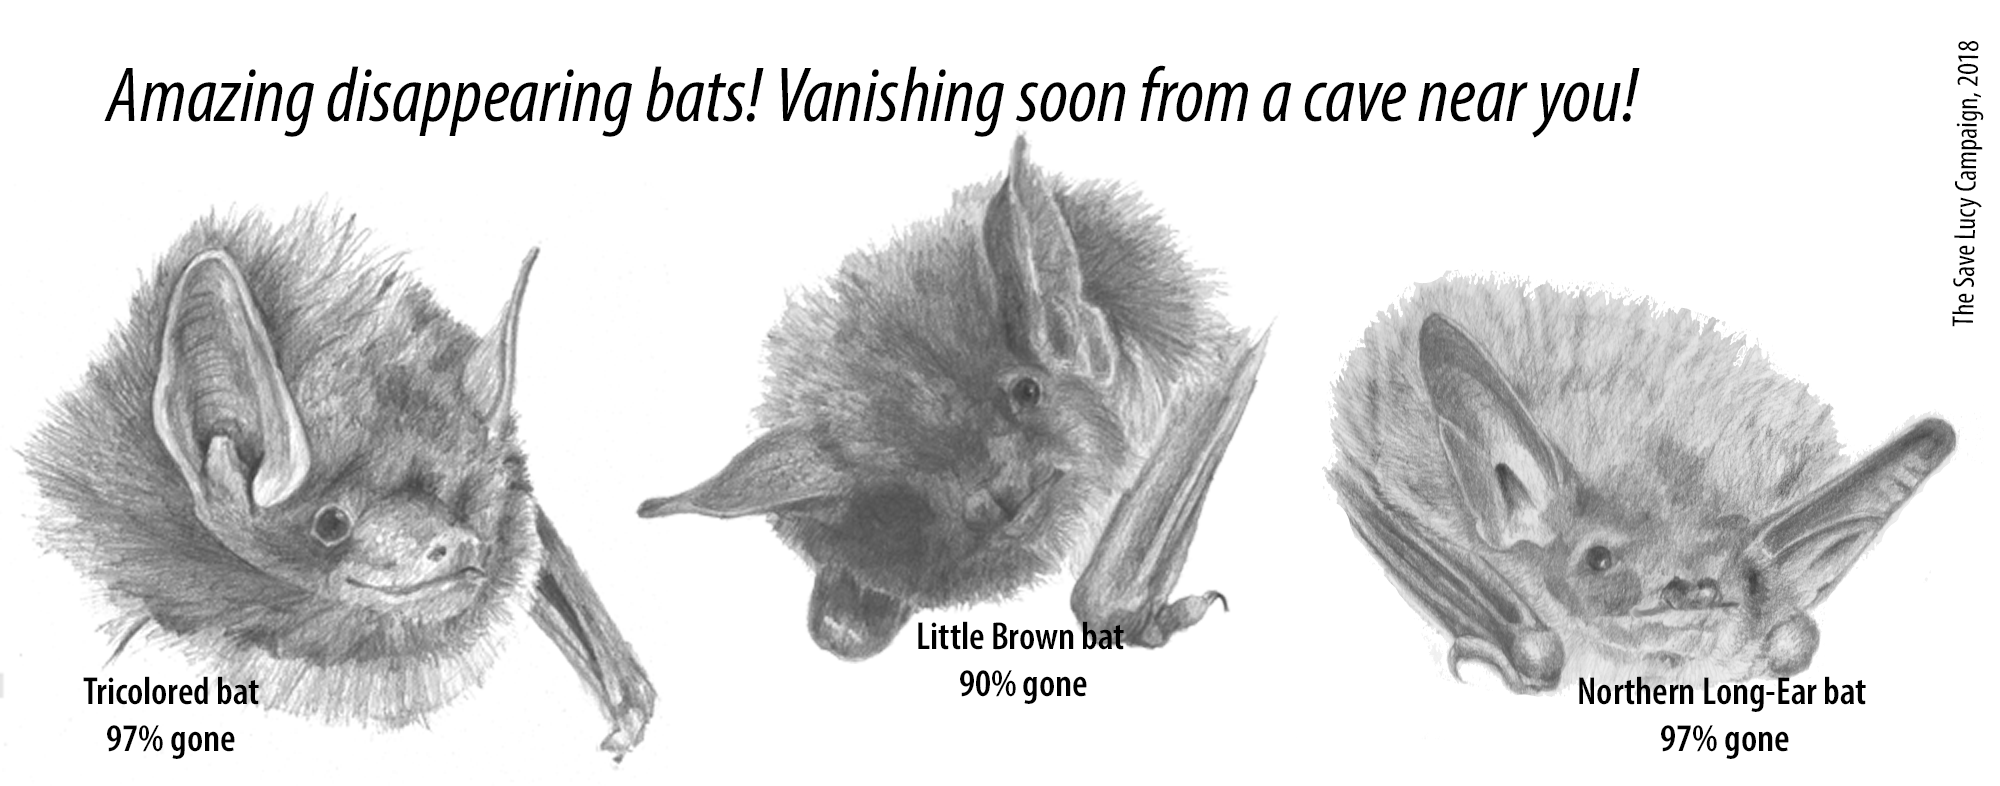 "Pencil drawings of a tricolor bat, a little brown bat, and a northern long-ear bat, with the caption ""Amazing disappearing bats! Vanishing soon from a cave near you!"""